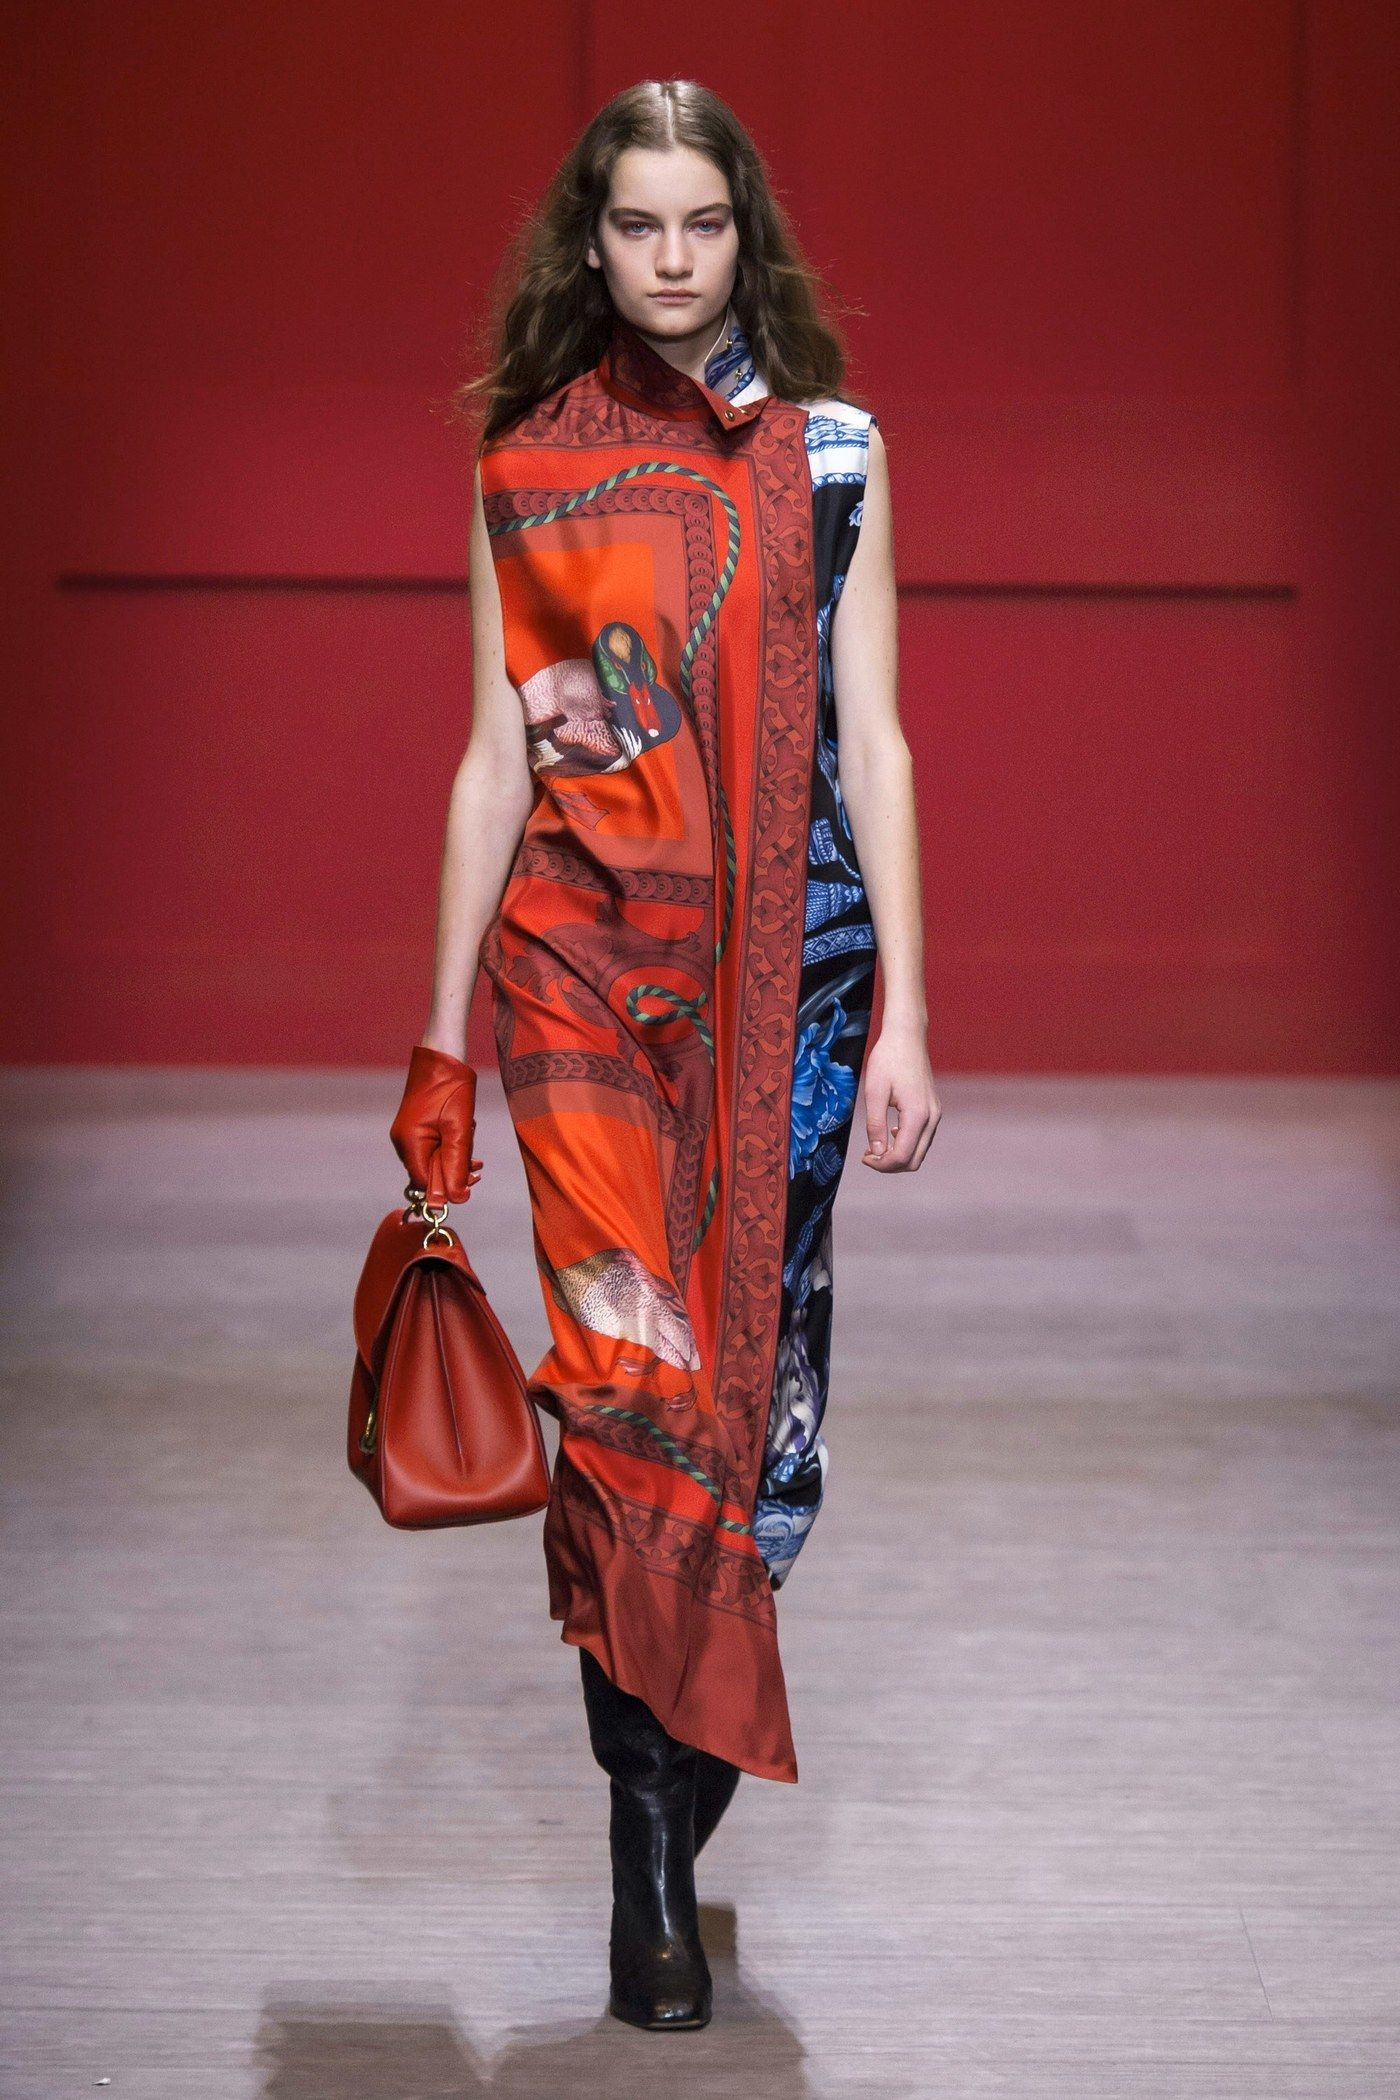 The biggest fashion trends from the fall runway fall